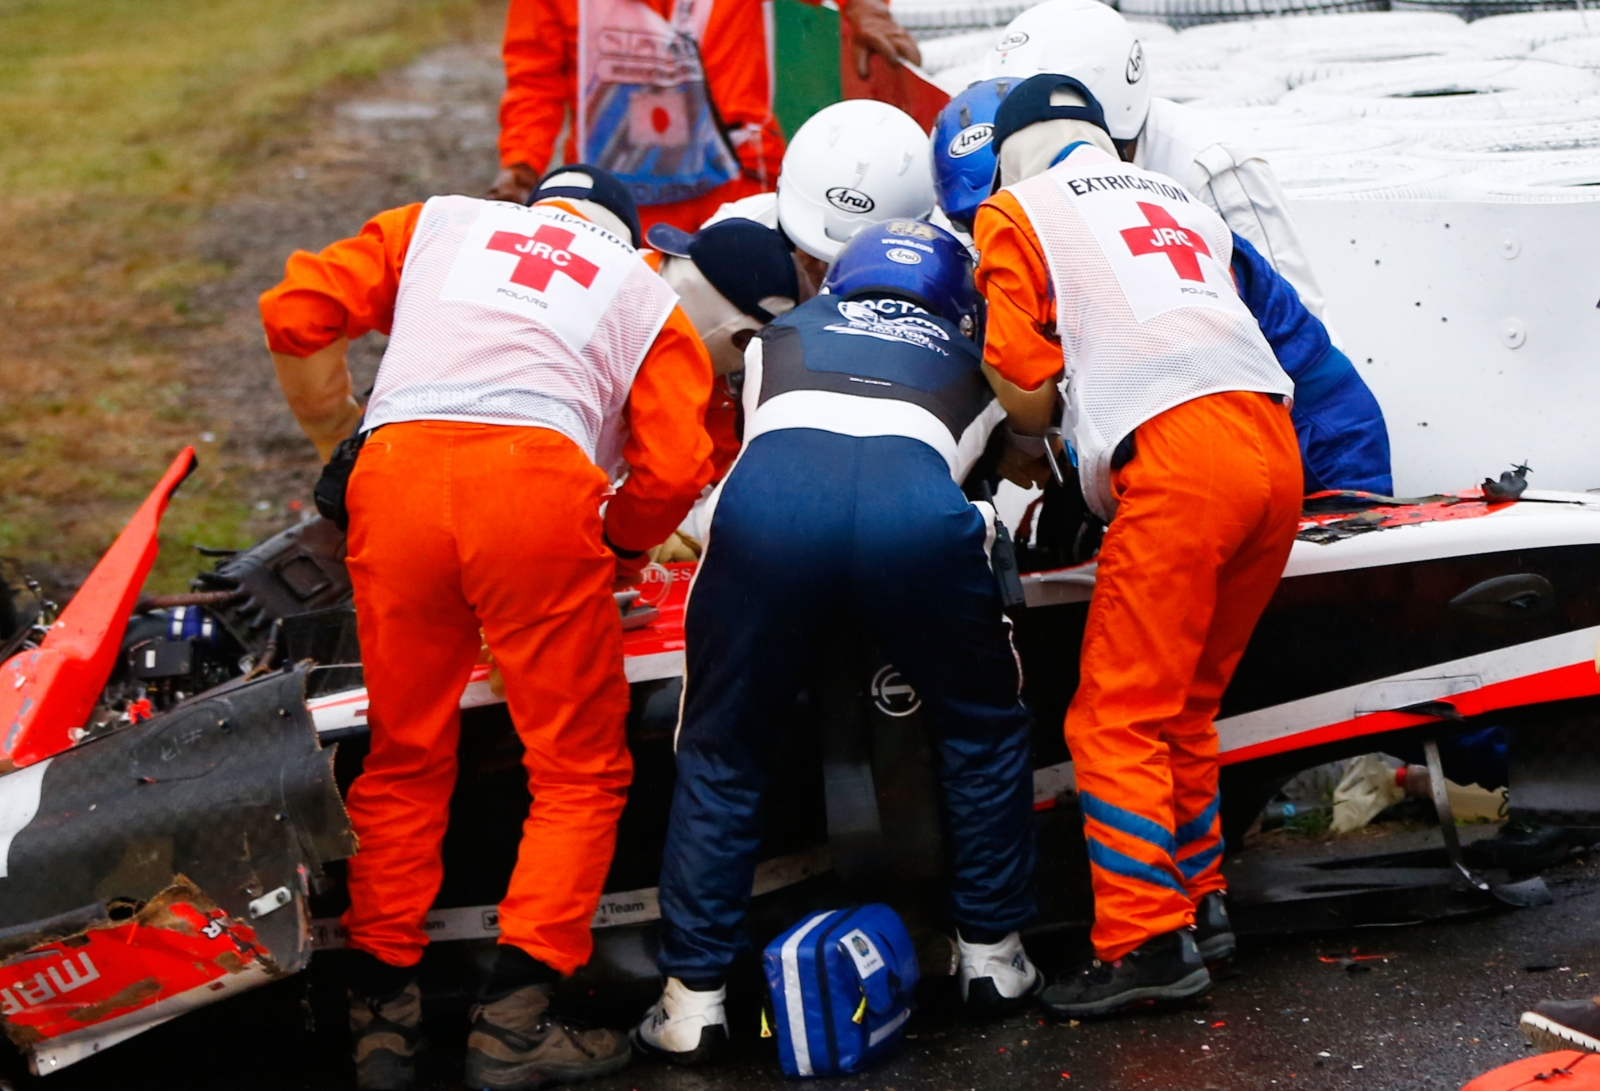 Jules Bianchi of France and Marussia receives urgent medical treatment after crashing during the Japanese Formula One Grand Prix at Suzuka (Getty)